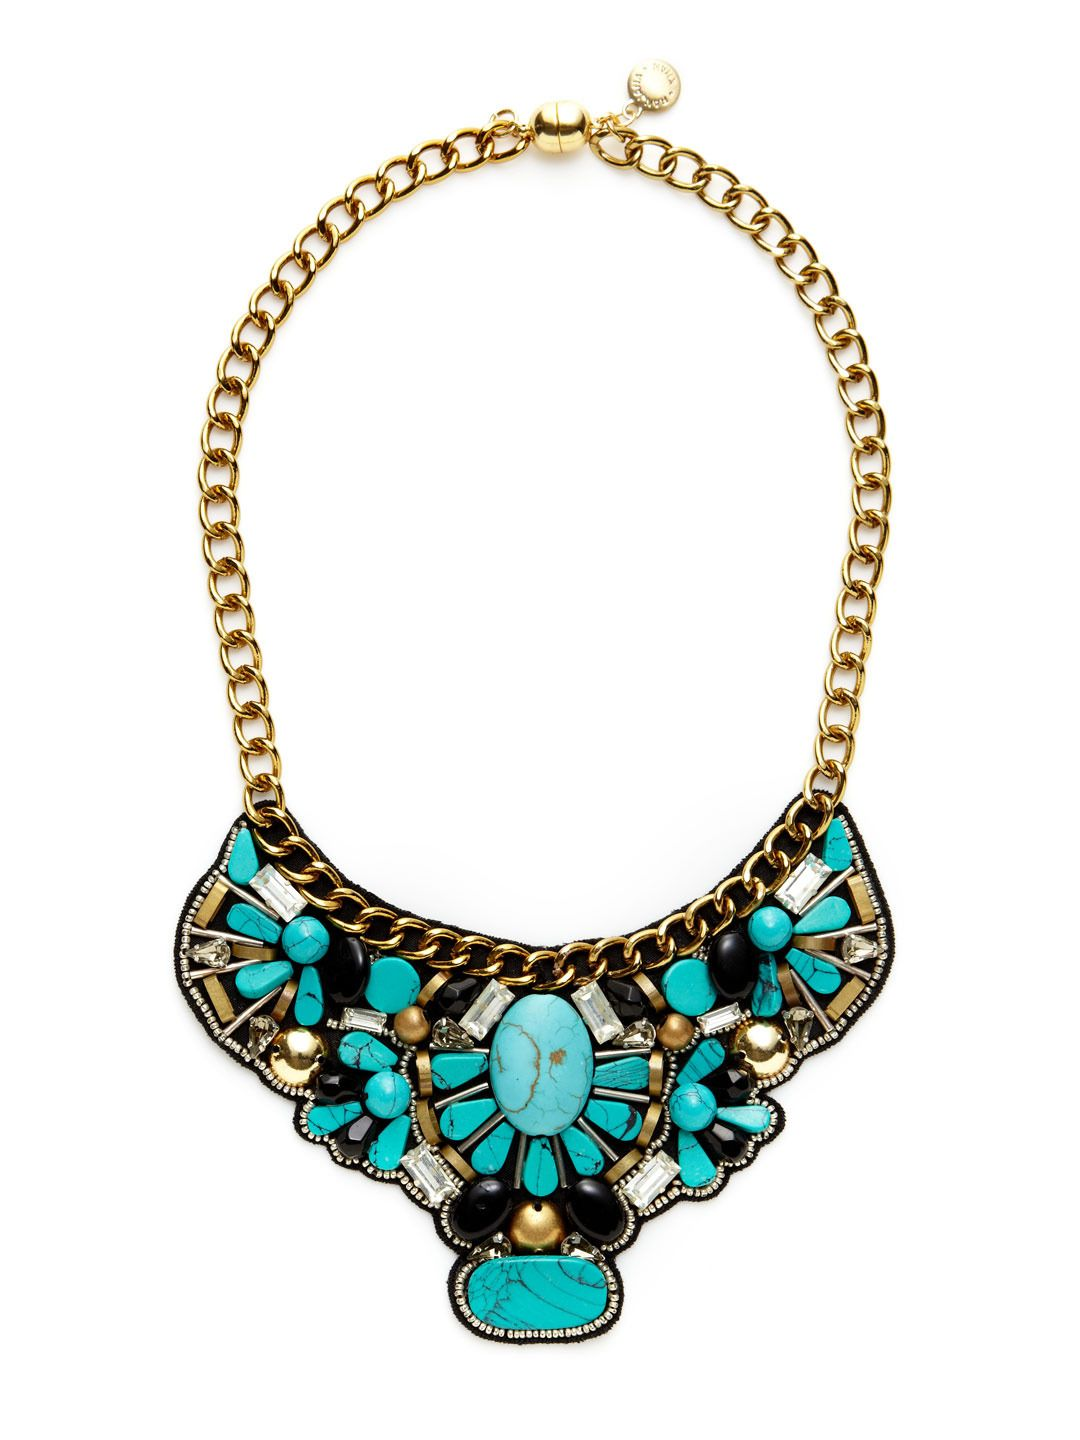 Ranjana Khan Beaded Turquoise Statement Necklace r68ma3qWy